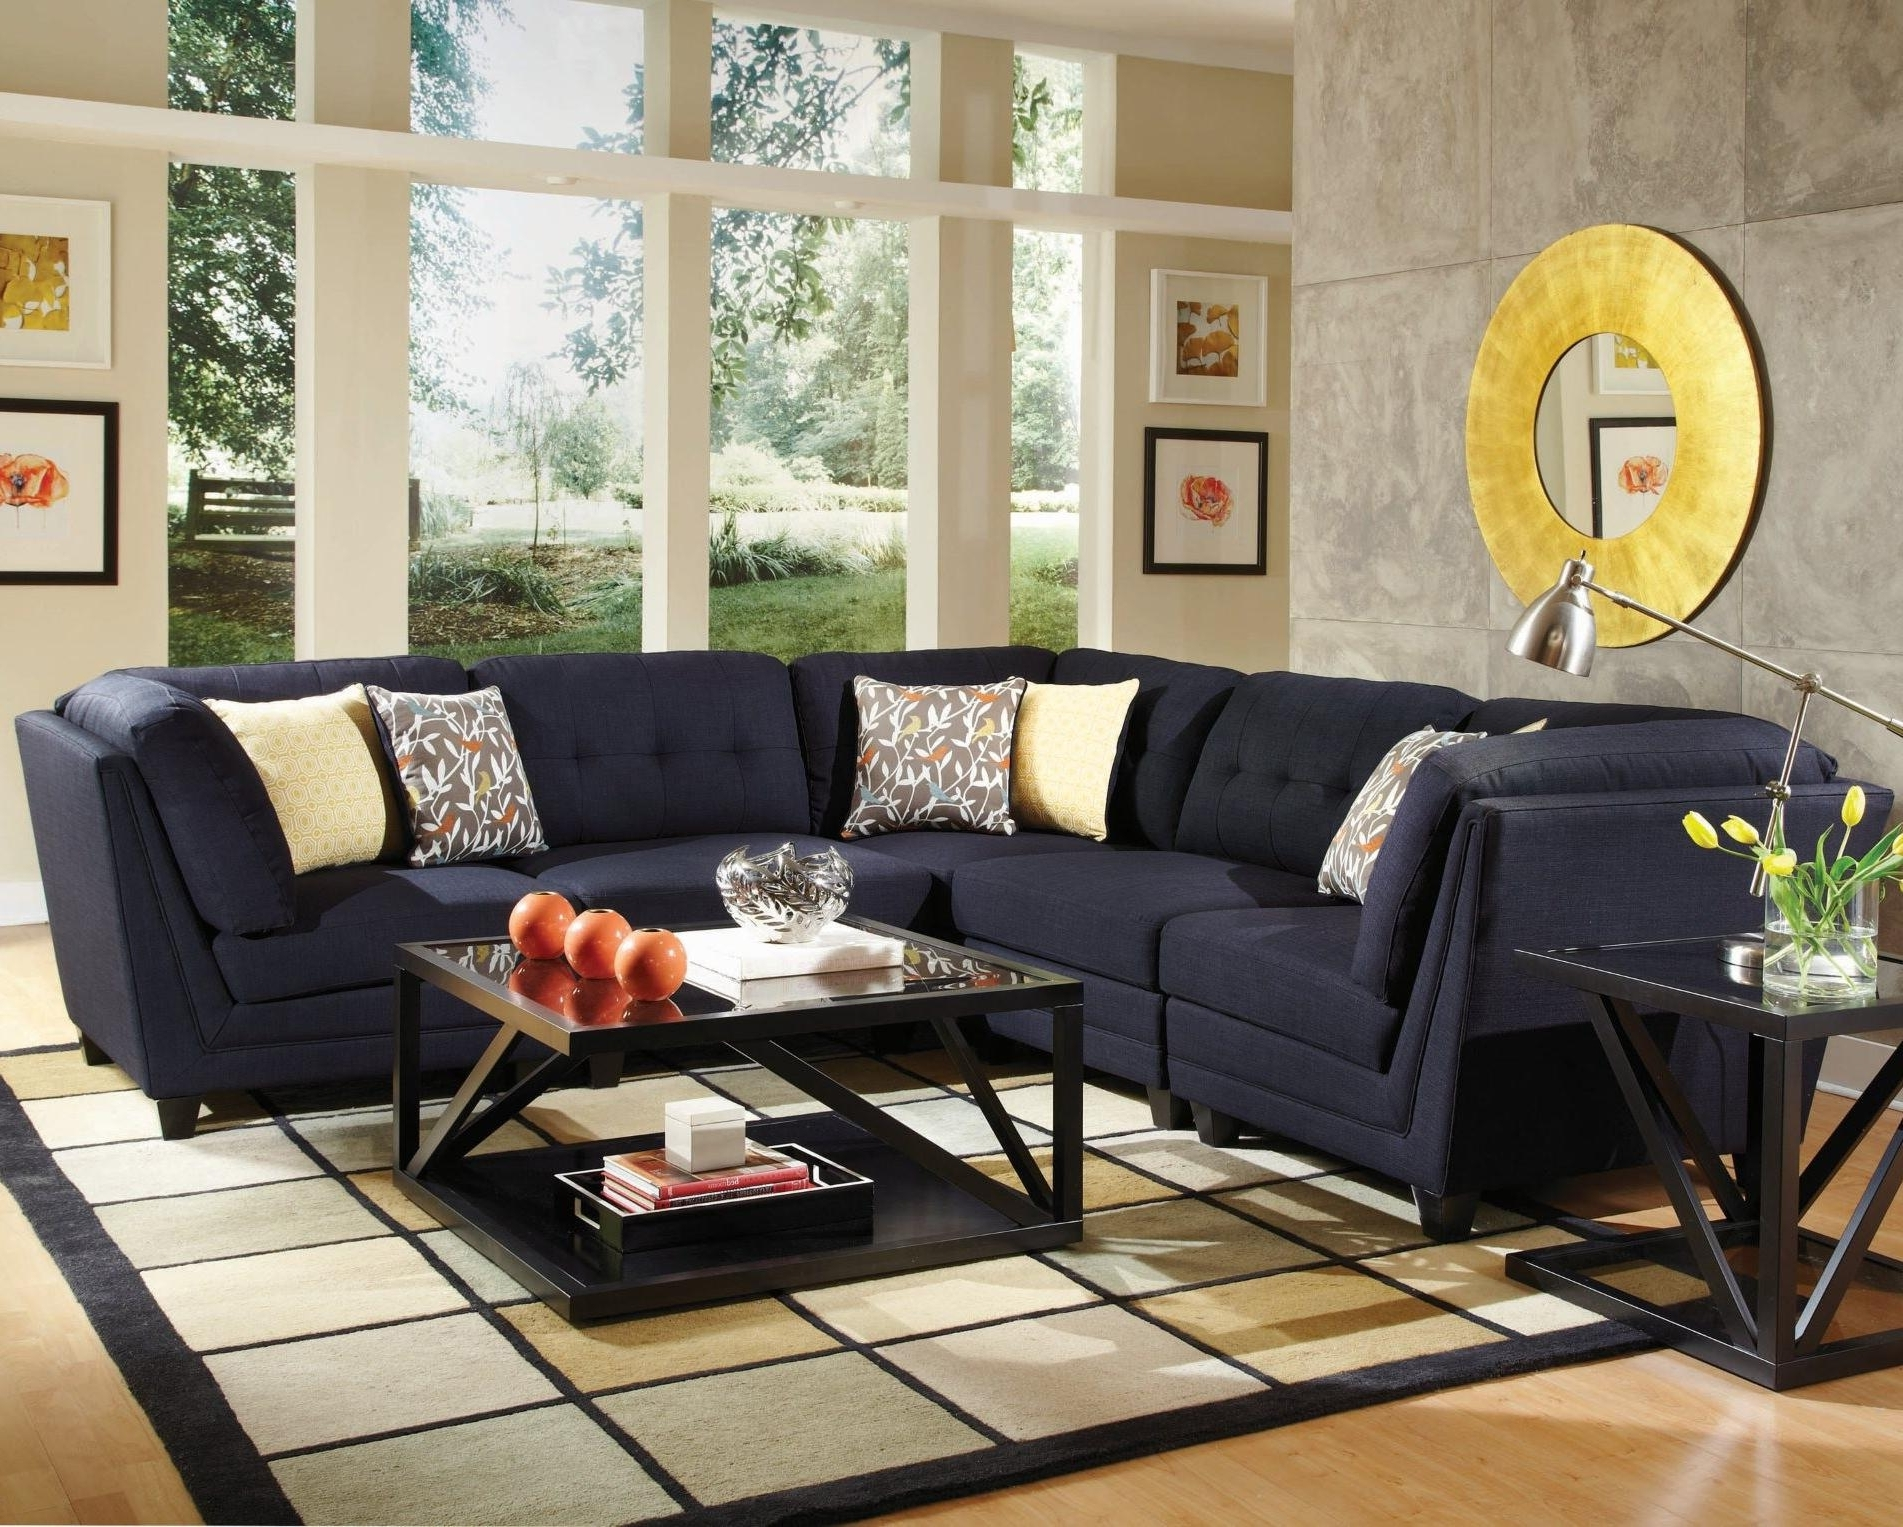 Latest Coaster Keaton Transitional Five Piece Sectional Sofa With Tufting Throughout Las Vegas Sectional Sofas (View 17 of 20)